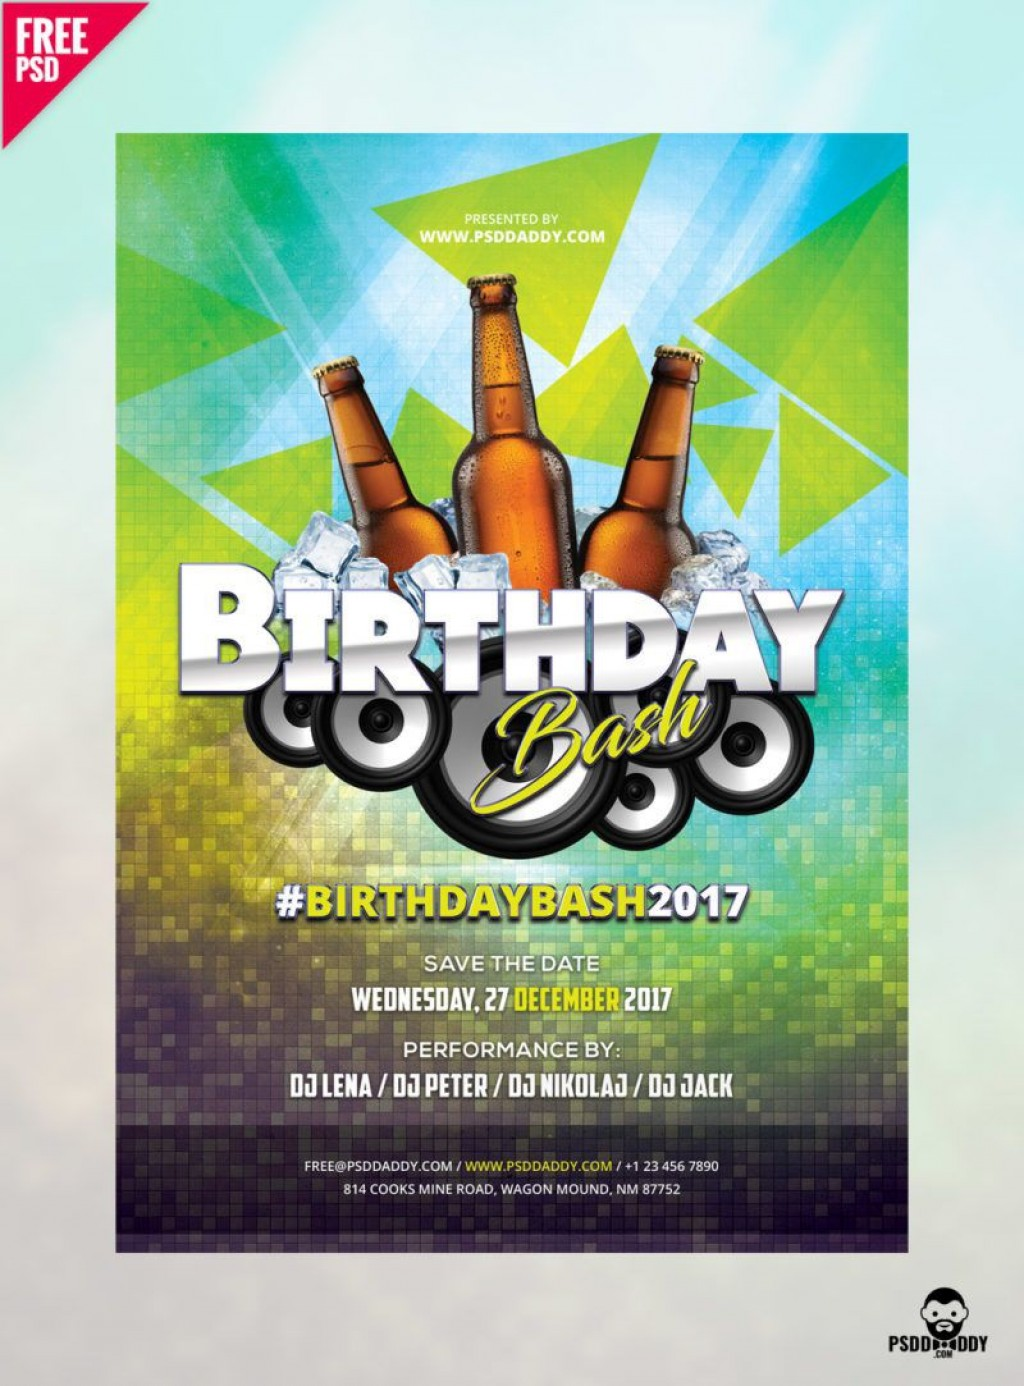 004 Unbelievable Birthday Party Invitation Flyer Template Free Download High Definition Large